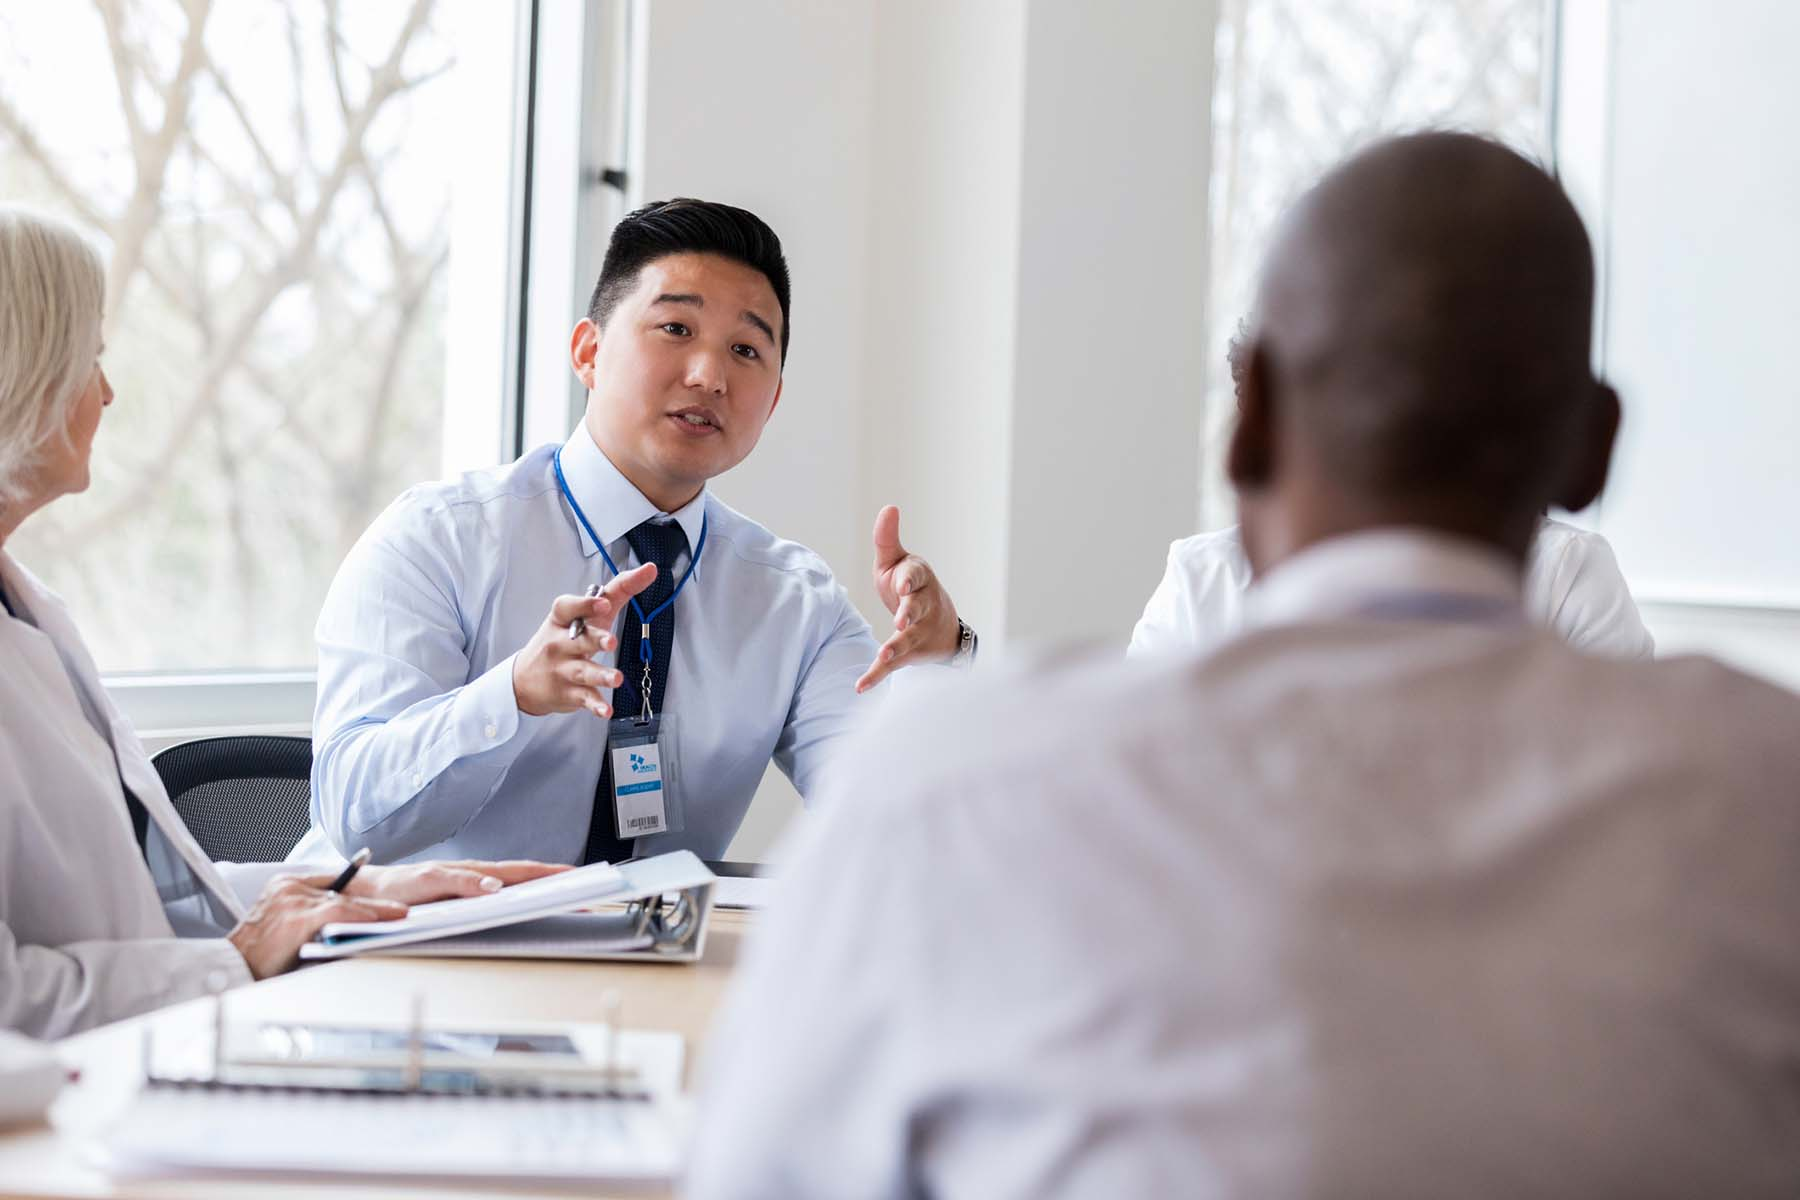 man talking in meeting